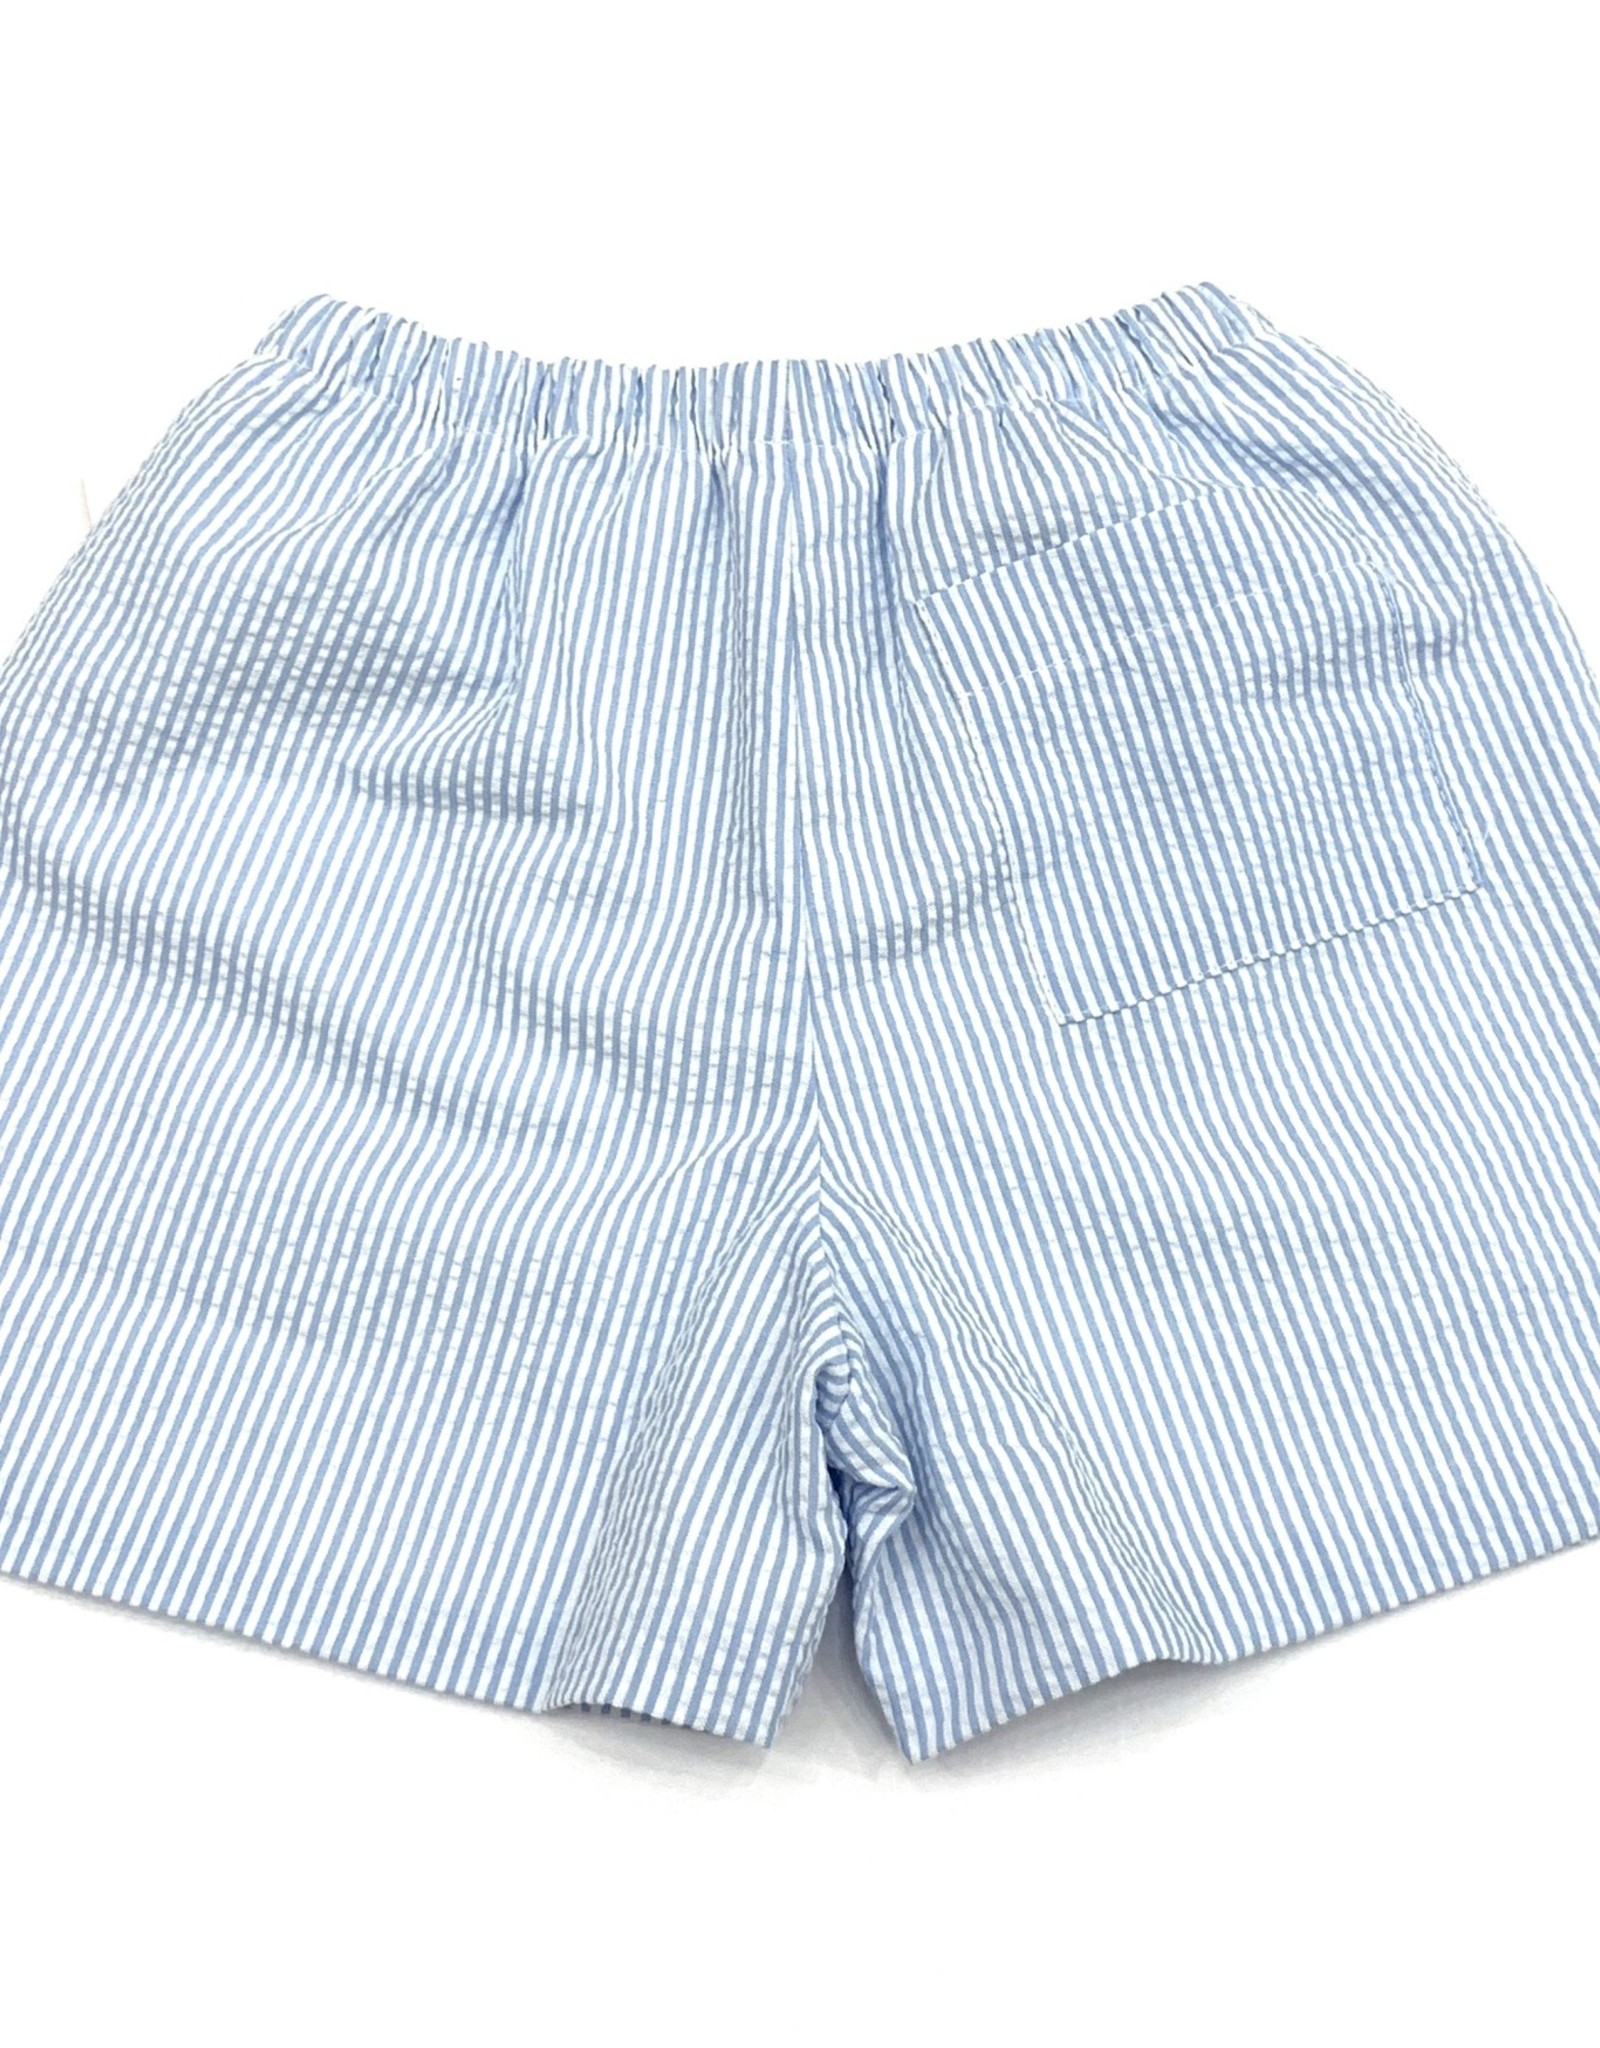 James and Lottie Conrad Blue Seersucker Shorts